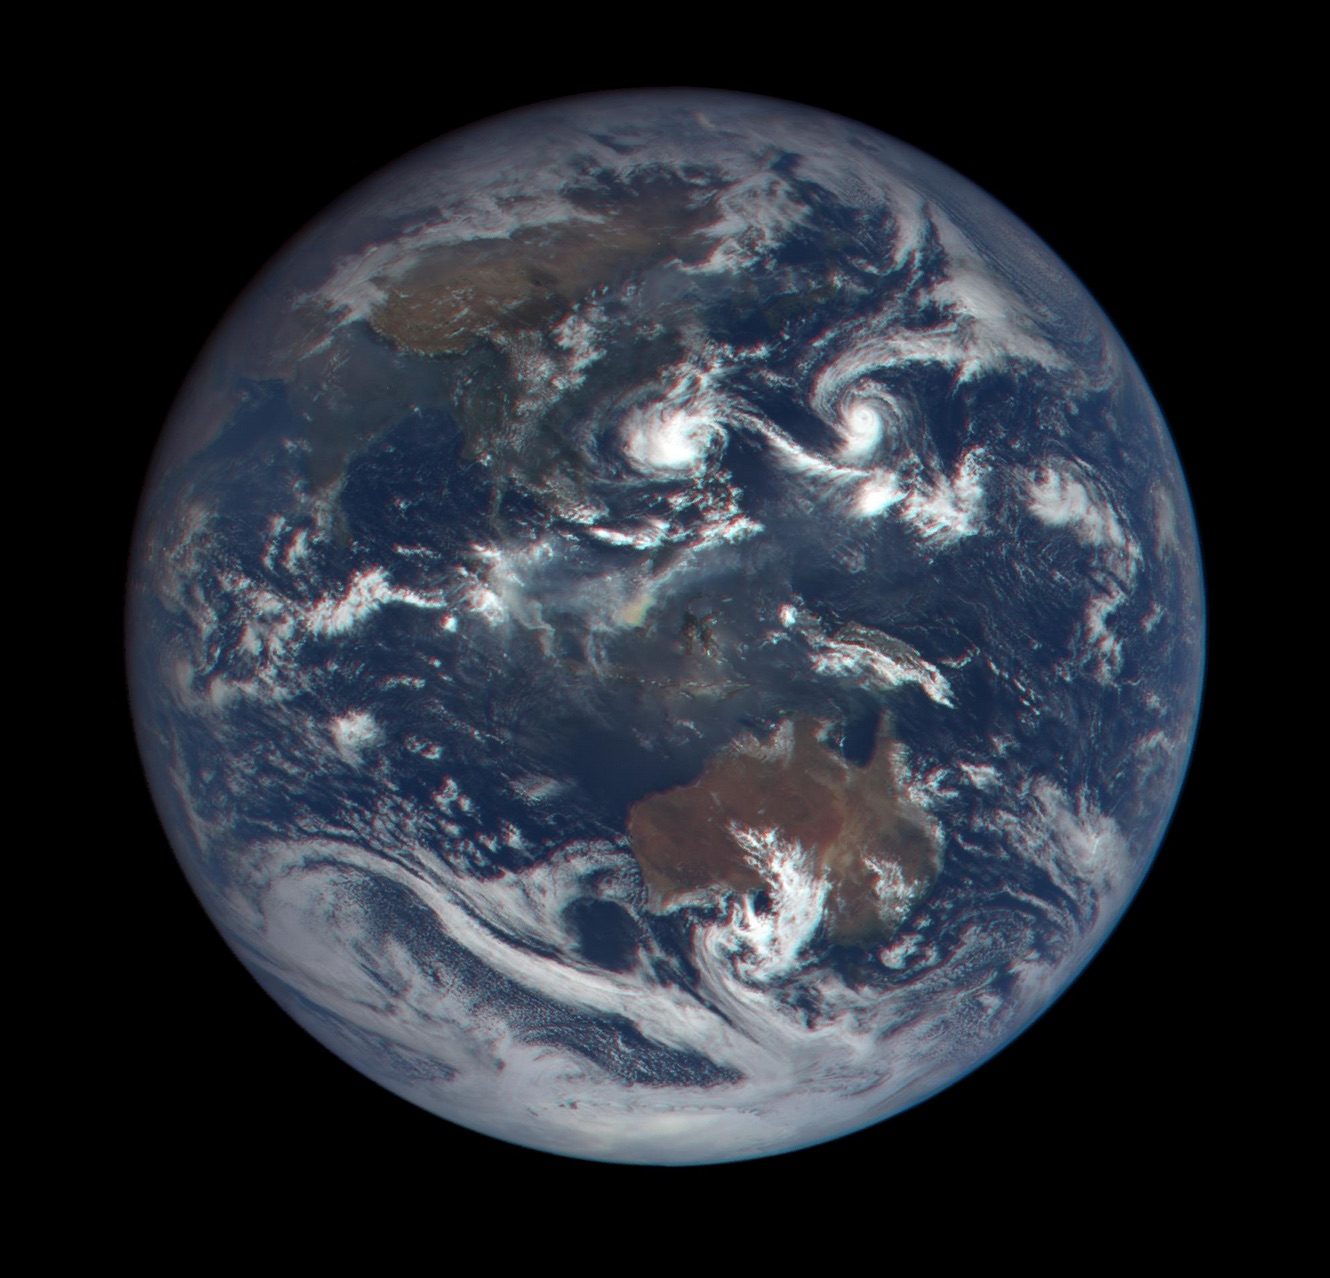 DSCOVR-Earth-image-19Oct2015